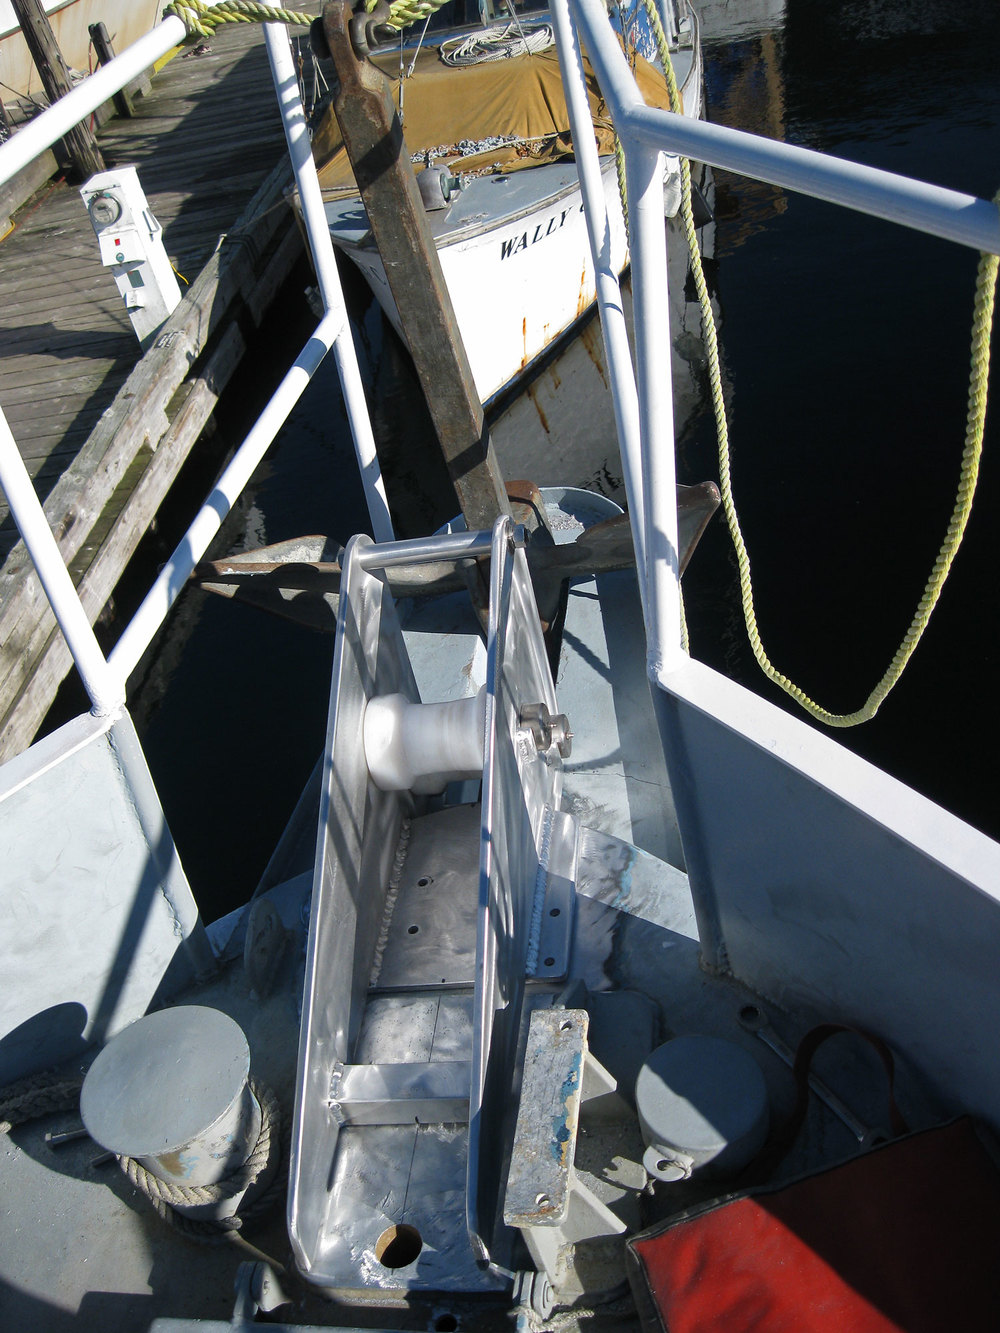 The bow roller before bolting and welding. The bowsprit will be shortened after the welding is done.